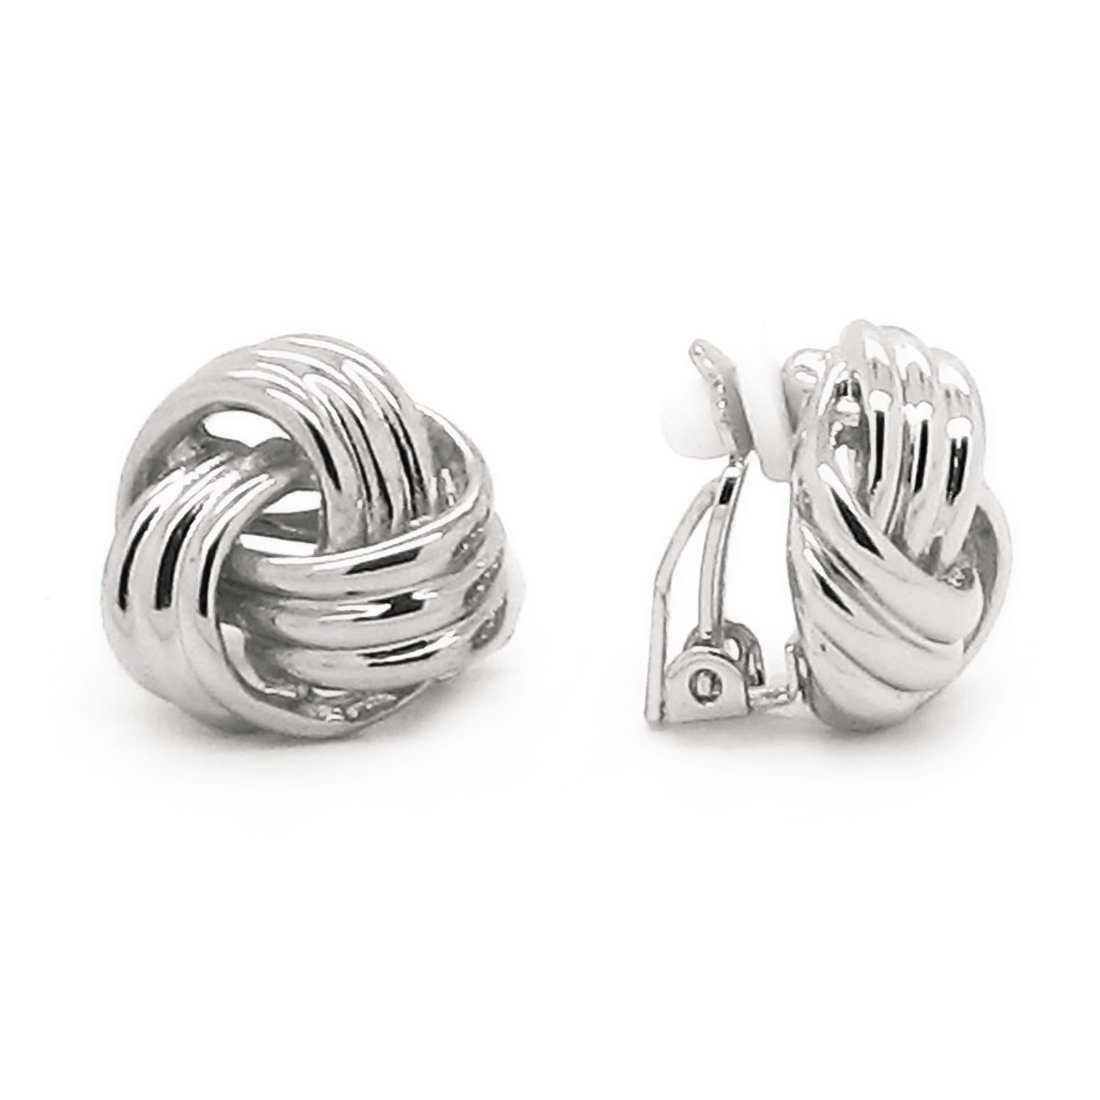 Sparkly Bride Love Knot Clip On Earrings Rhodium Plated Women Fashion